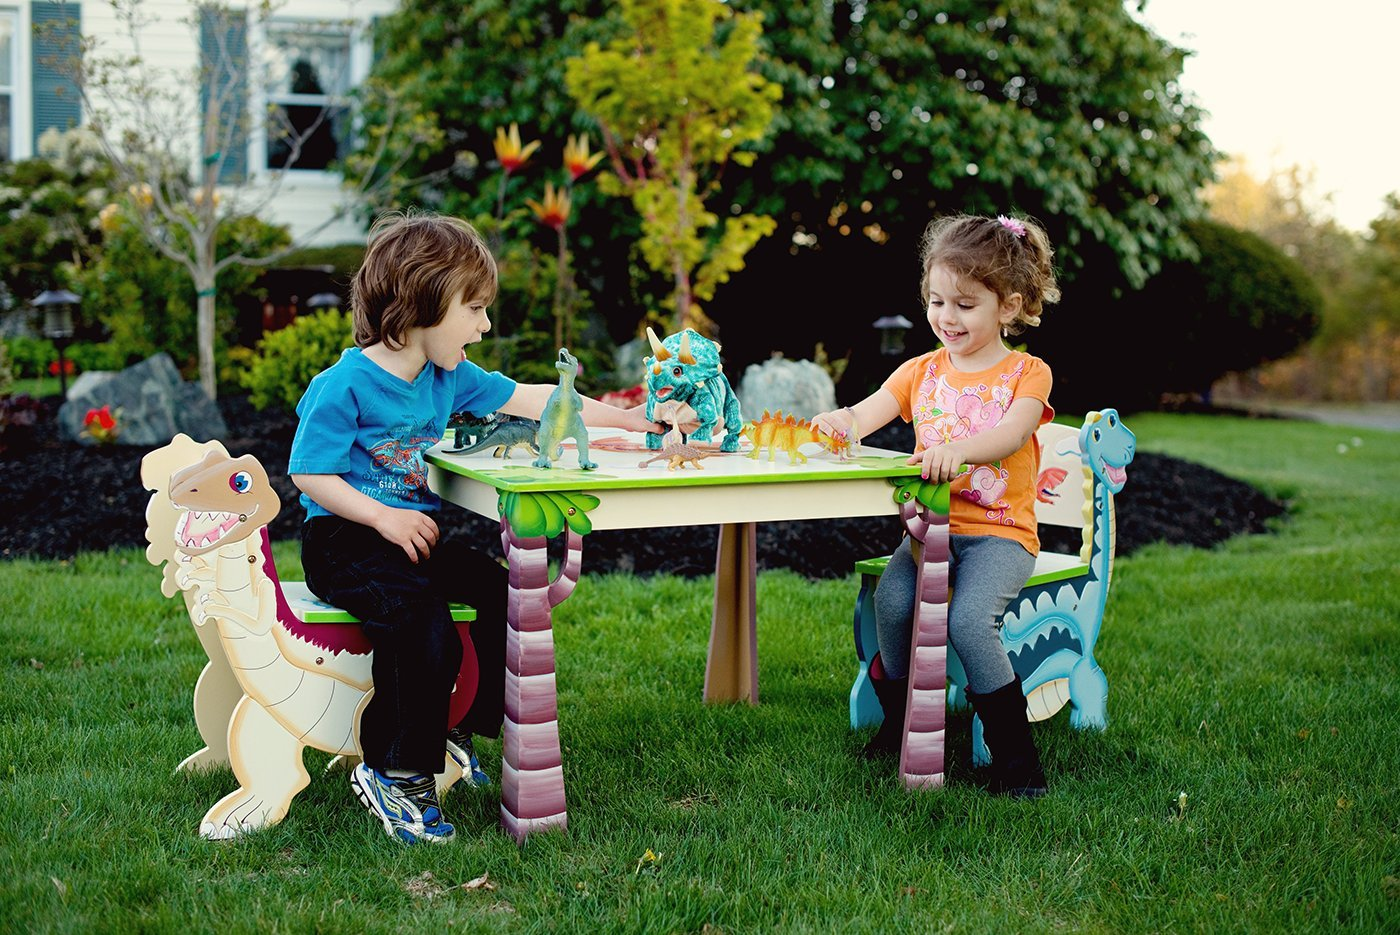 Fantasy Fields TD-0079A1 Dinosaur Kingdom Table pour enfants Bois Multicolore 71,12 x 71,12 x 52,07 cm